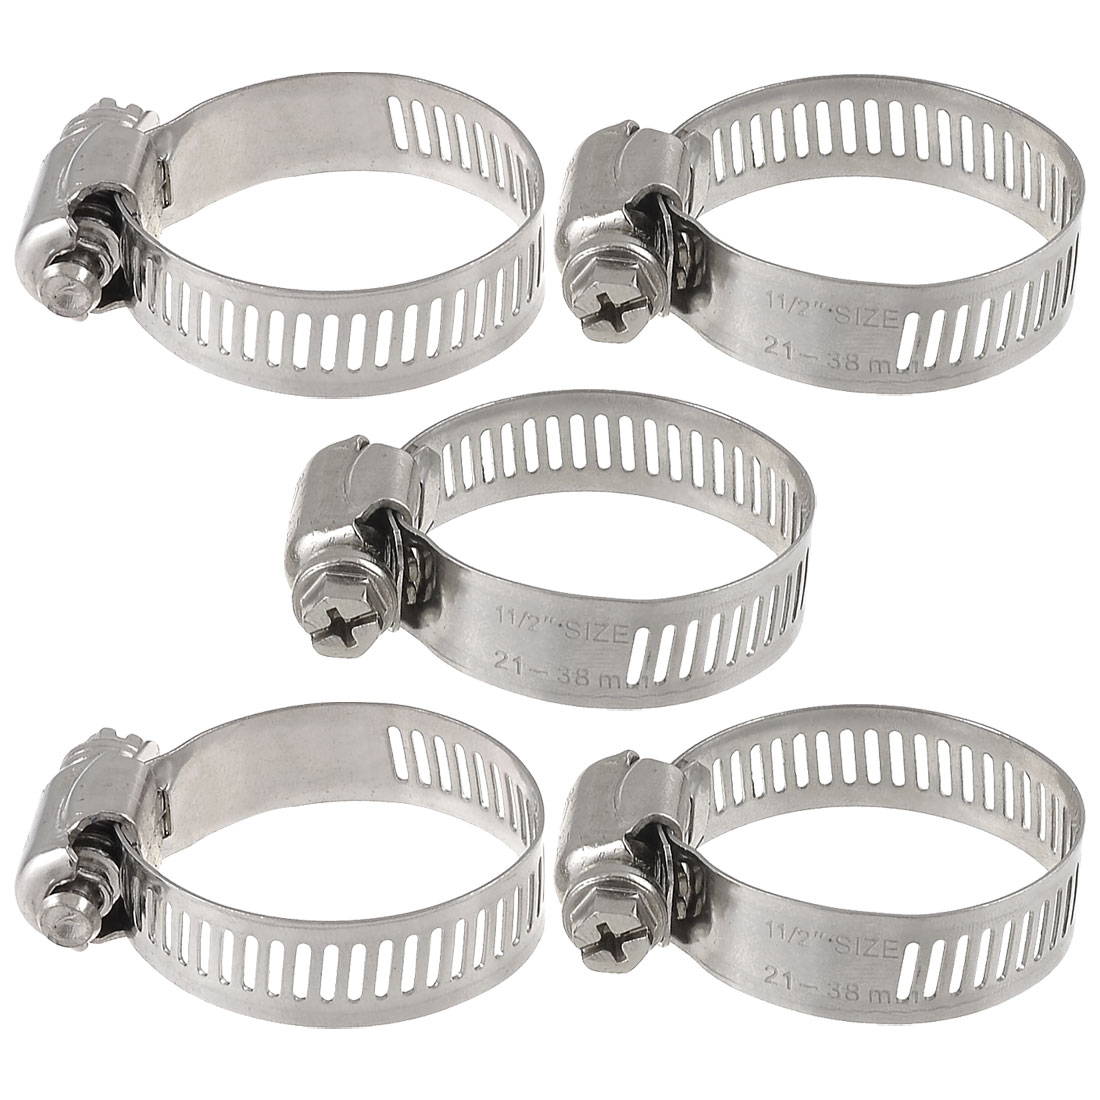 Unique Bargains 5 Pieces Bolt Release 21mm to 38mm Worm Drive Hose Clamps Pipe Hoops